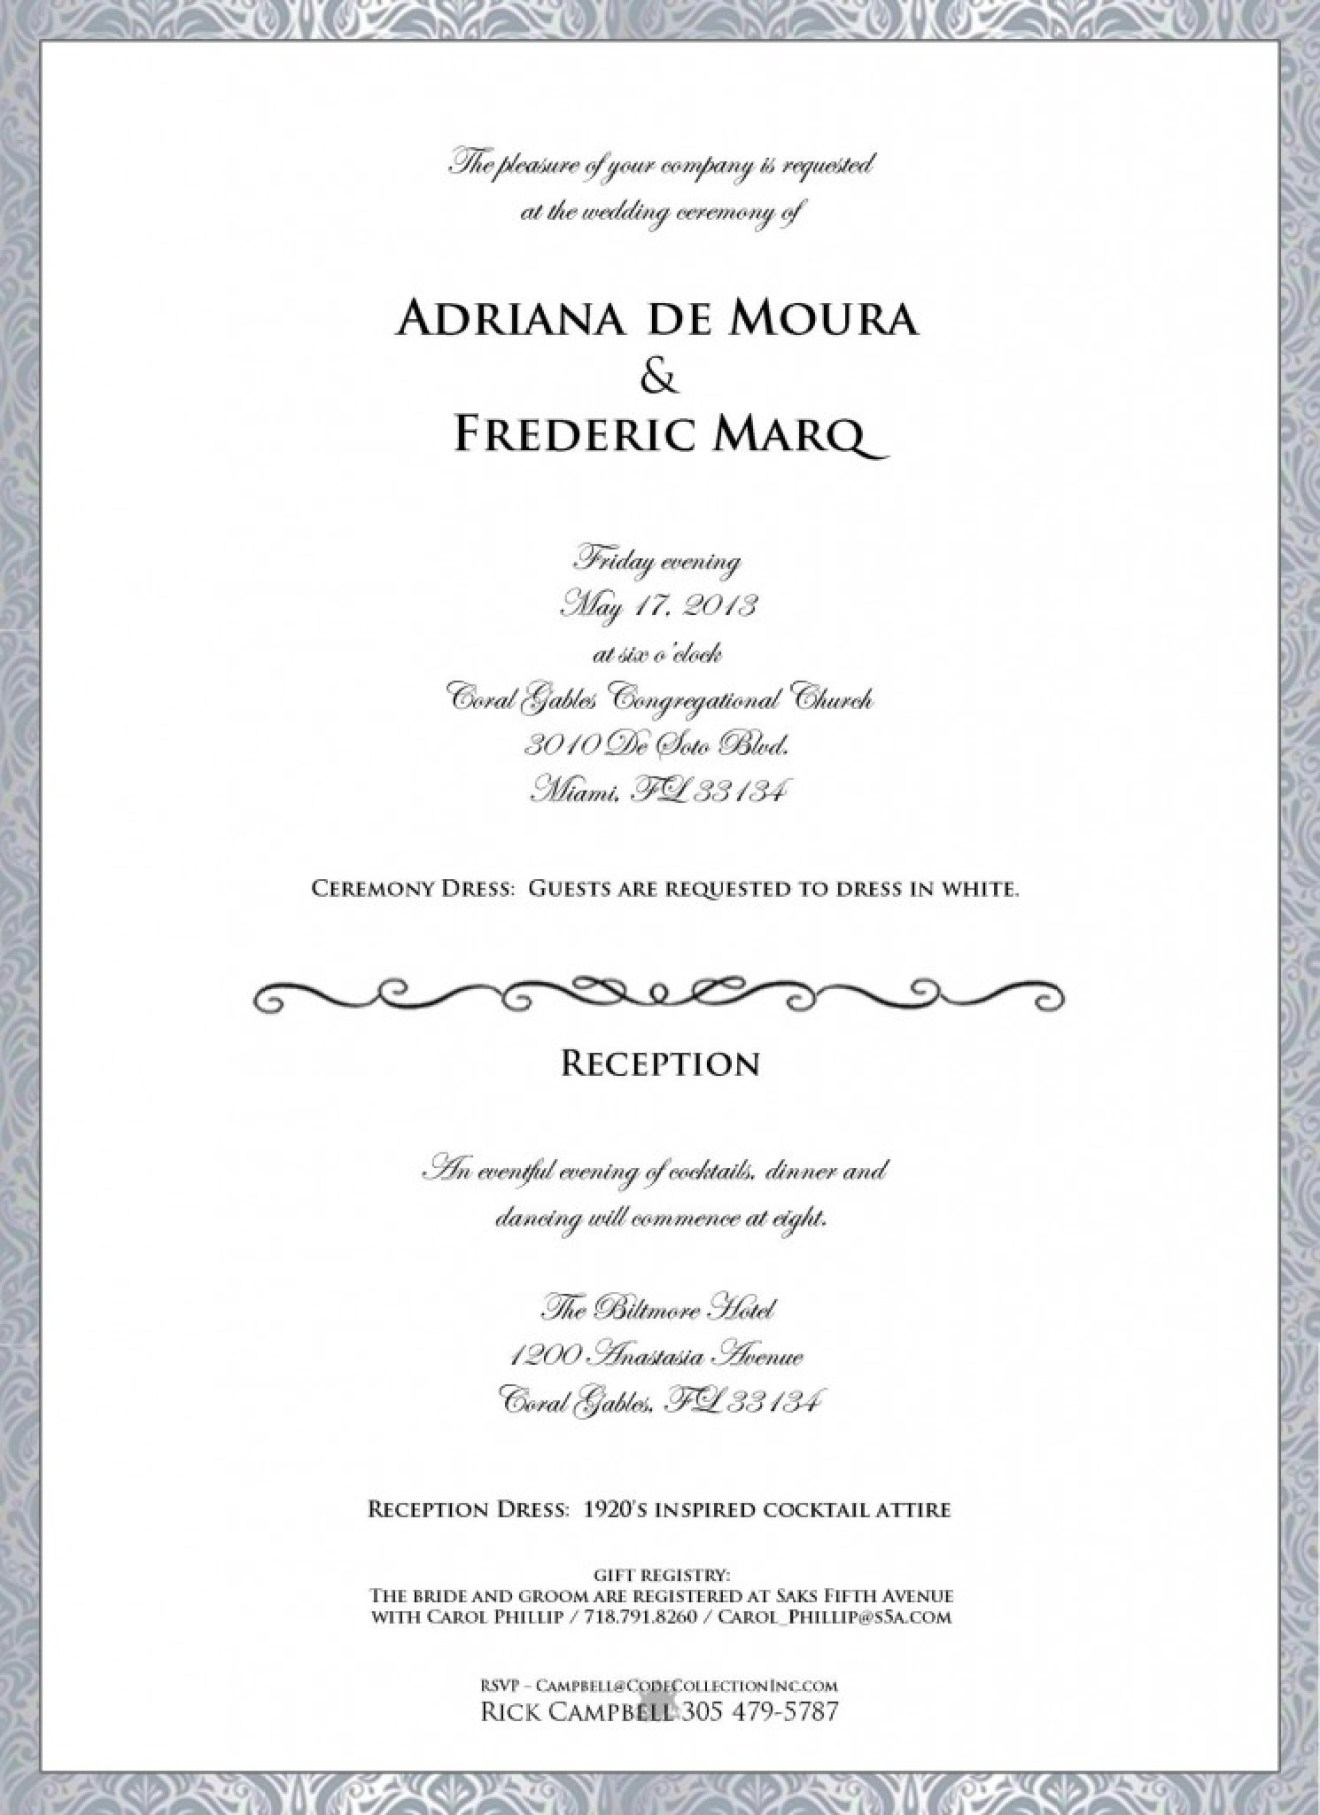 Adriana de mouras wedding invitation leaks producers enforce check out the invitation and the mood board that comes along with it adrianaweddinginvitation stopboris Images